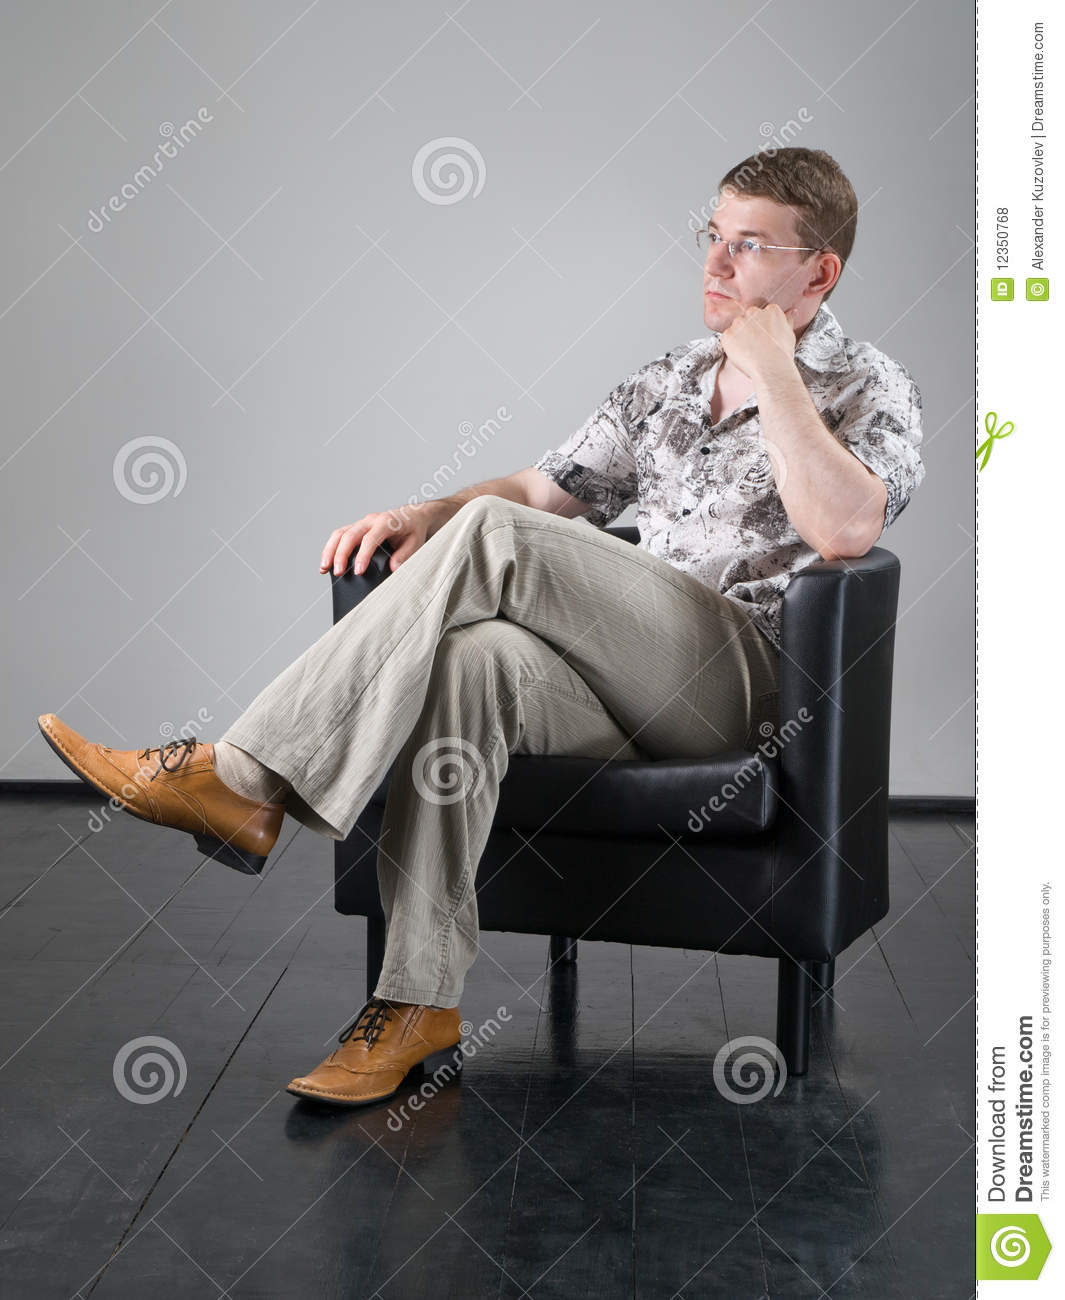 Man in armchair royalty free stock photos image 12350768 for Sitting in armchair